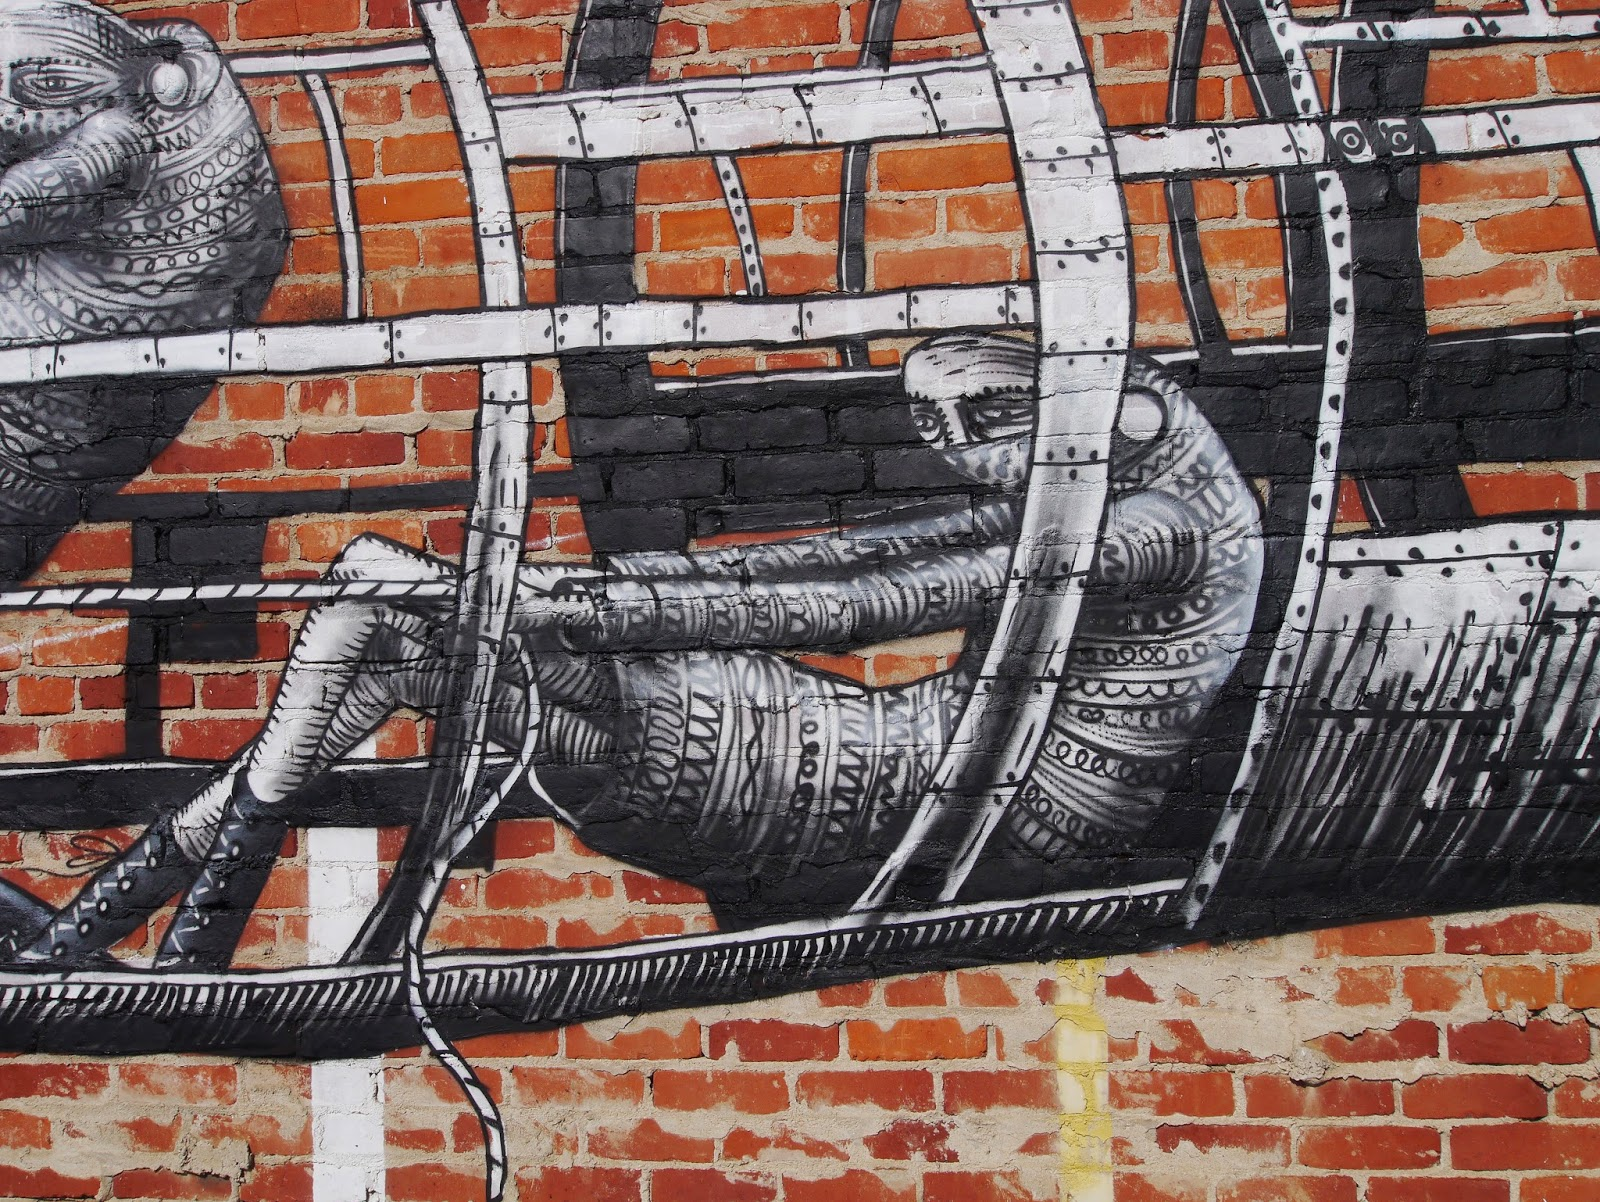 phlegm-new-mural-in-san-diego-california-04